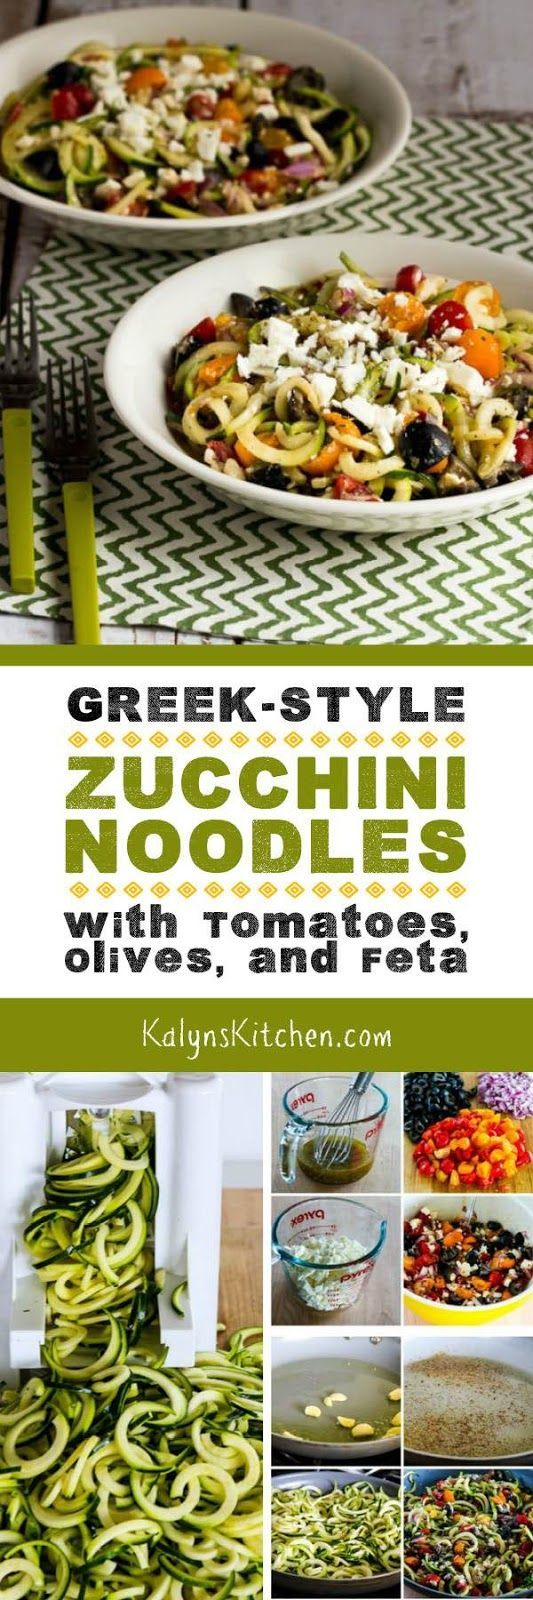 I think these Greek-Style Zucchini Noodles with Tomatoes, Olives, and Feta are a perfect summer meal! And this tasty dish with Greek-Salad flavors is low-carb, gluten-free, meatless, and South Beach Diet friendly! [found on KalynsKitchen.com]